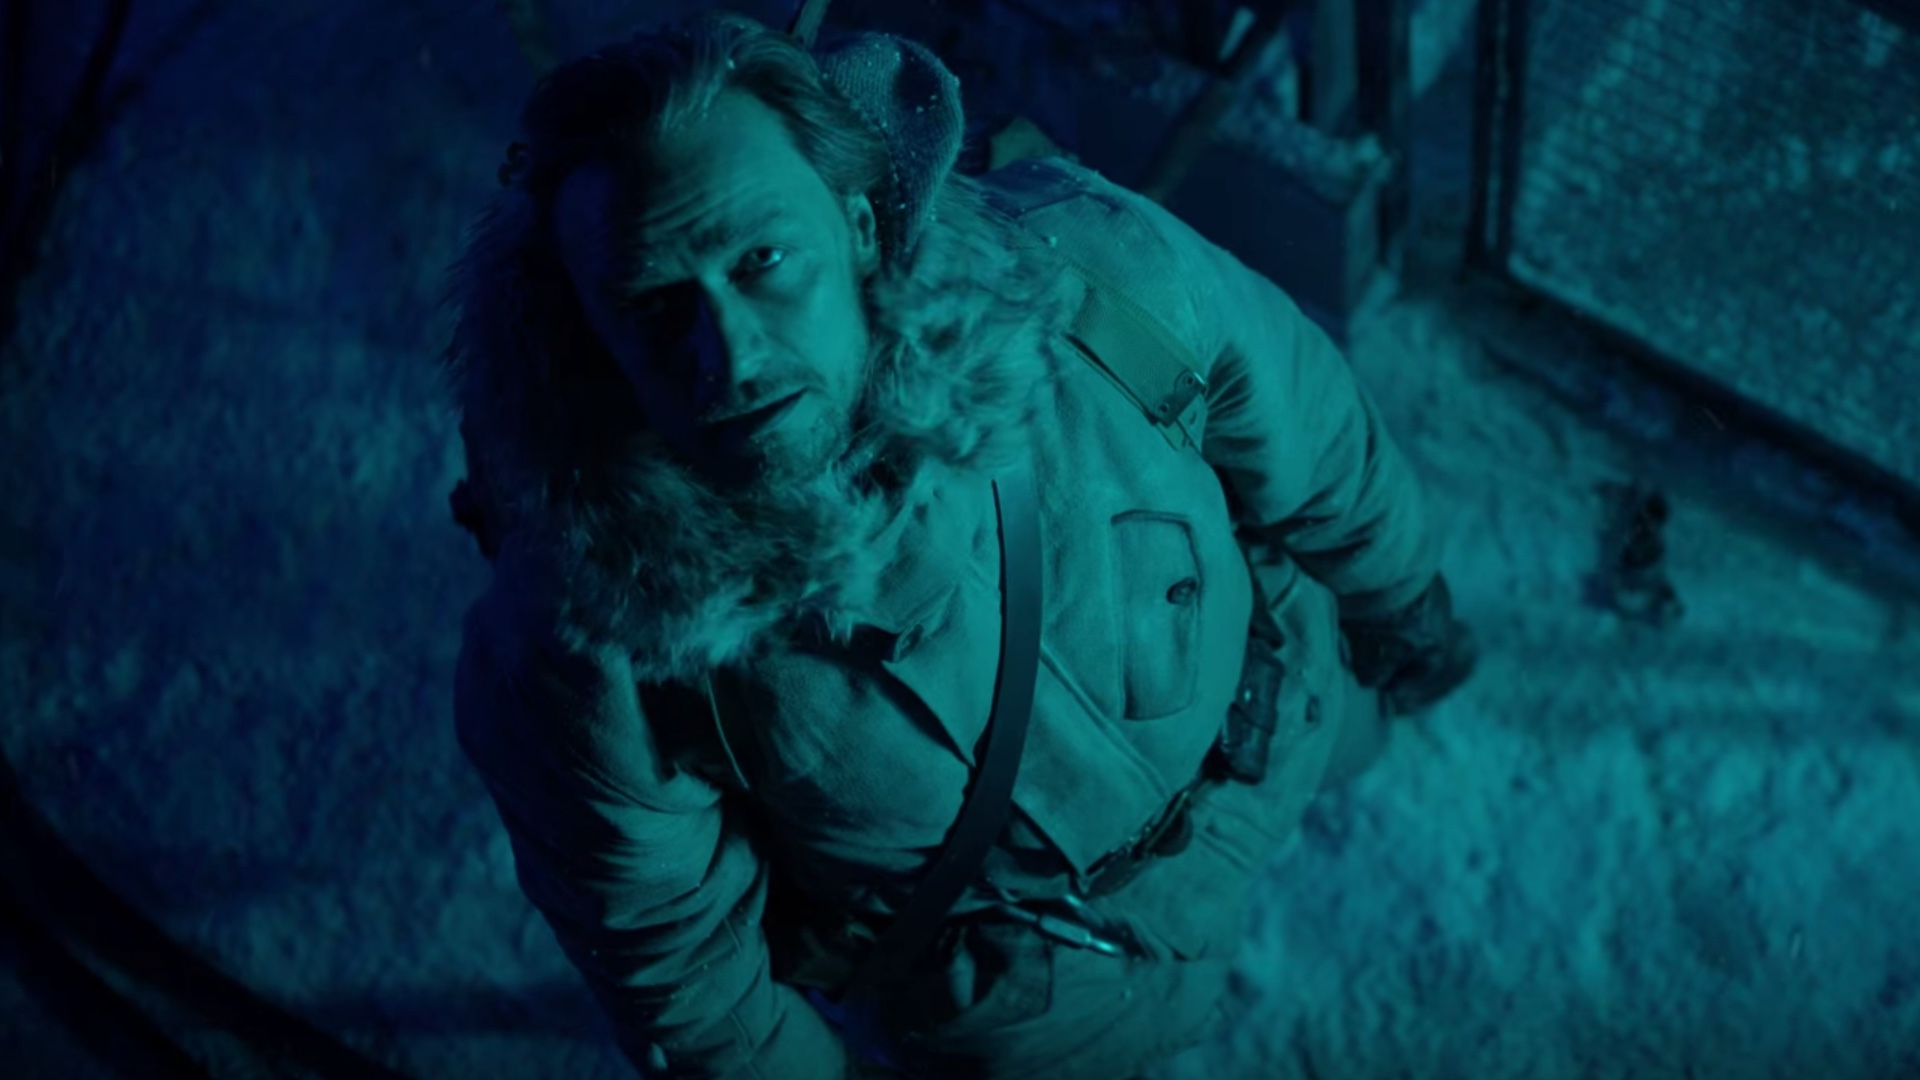 the-first-trailer-for-hbos-his-dark-materials-has-me-squeeing-like-a-fangirl-social.jpg